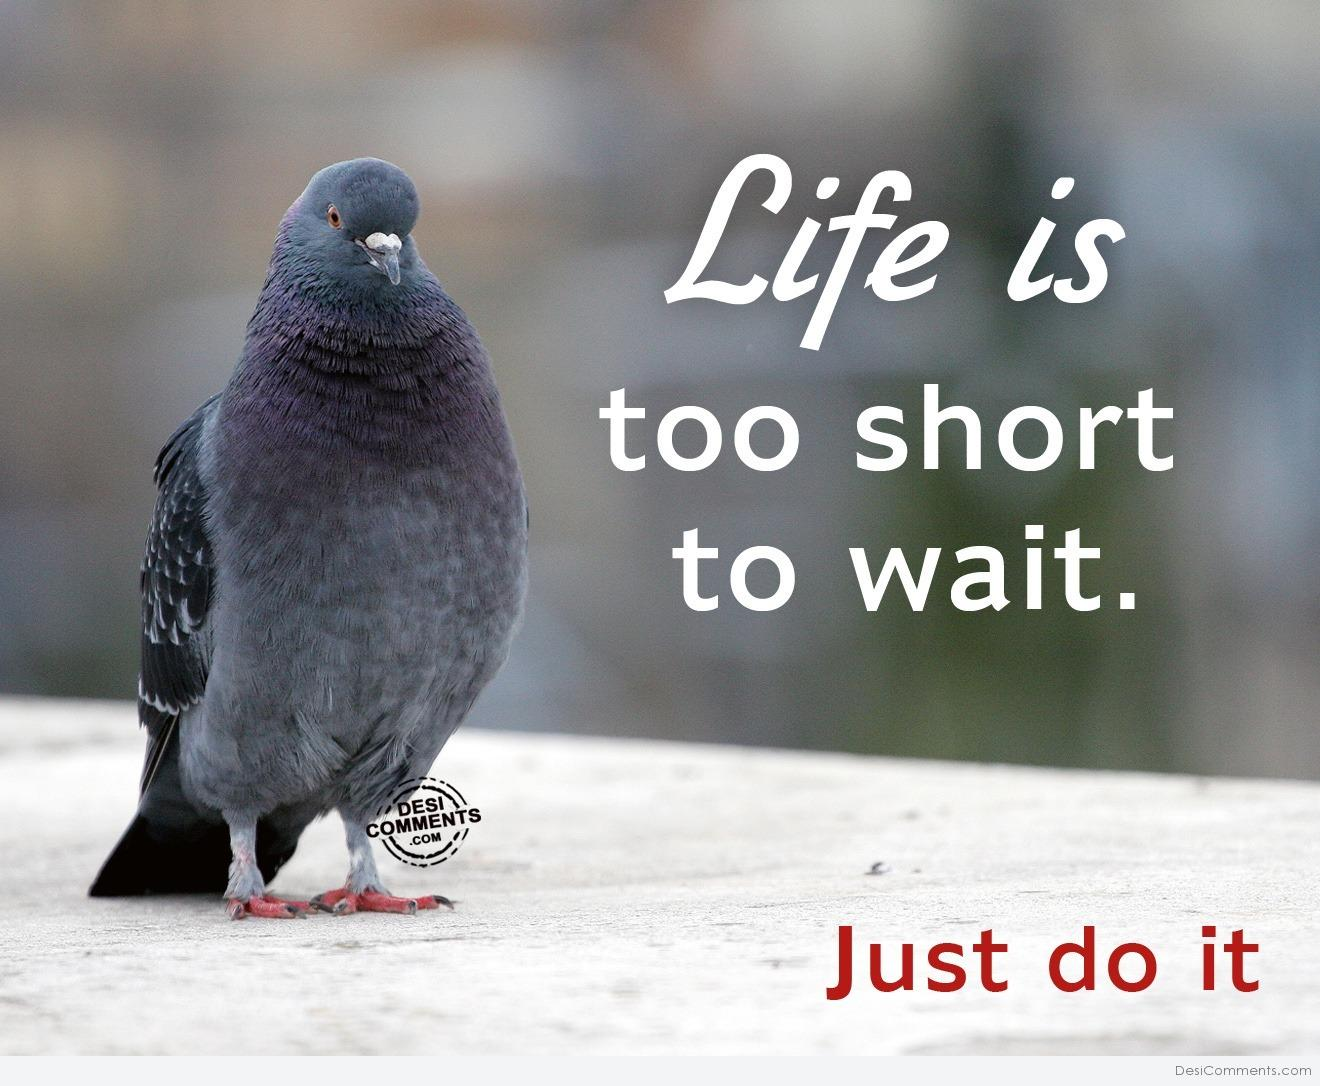 life too short Life is too short definition at dictionarycom, a free online dictionary with pronunciation, synonyms and translation look it up now.